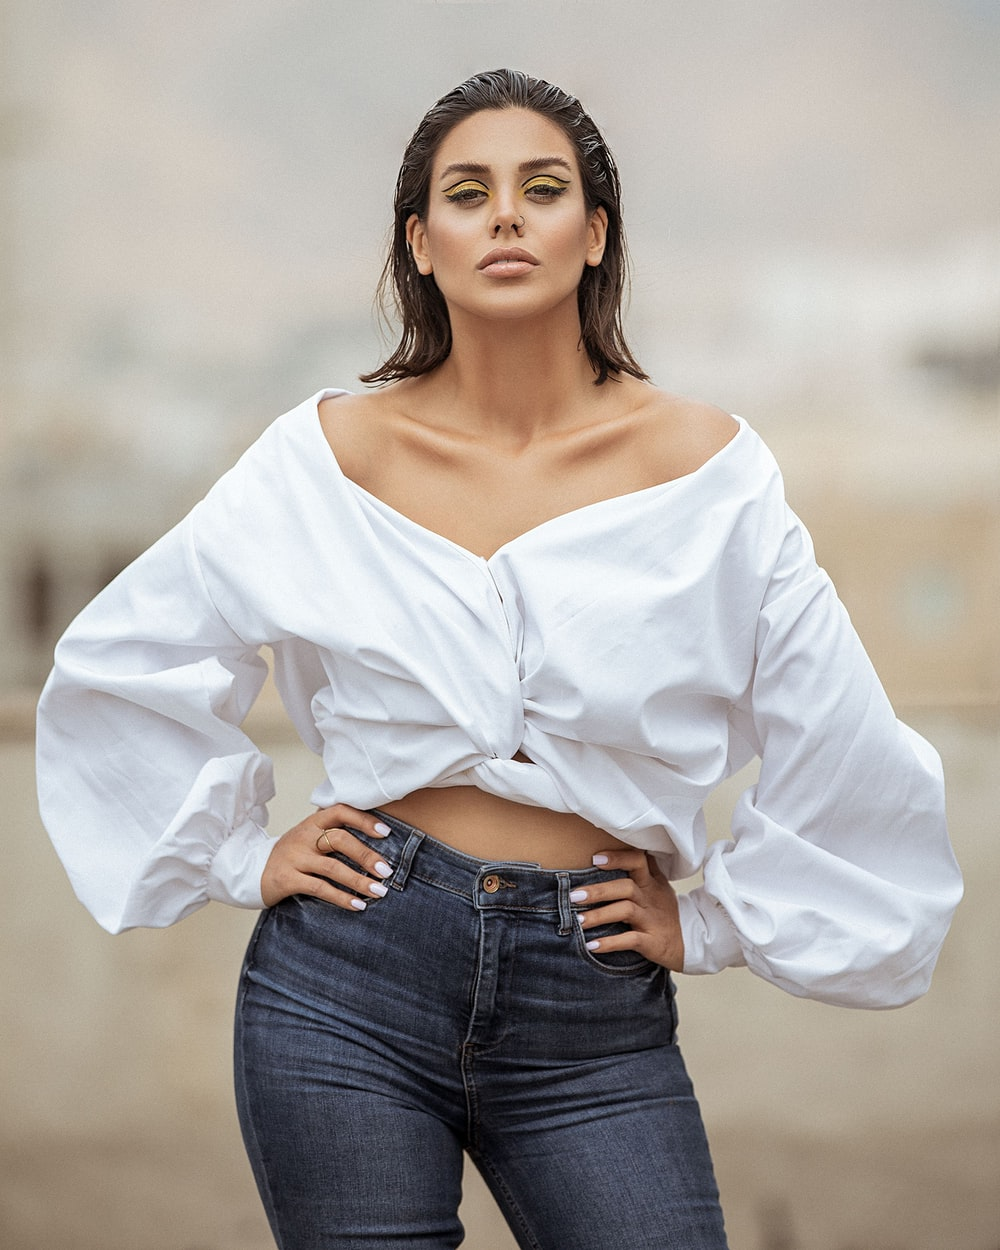 woman in white long sleeve shirt and blue denim jeans